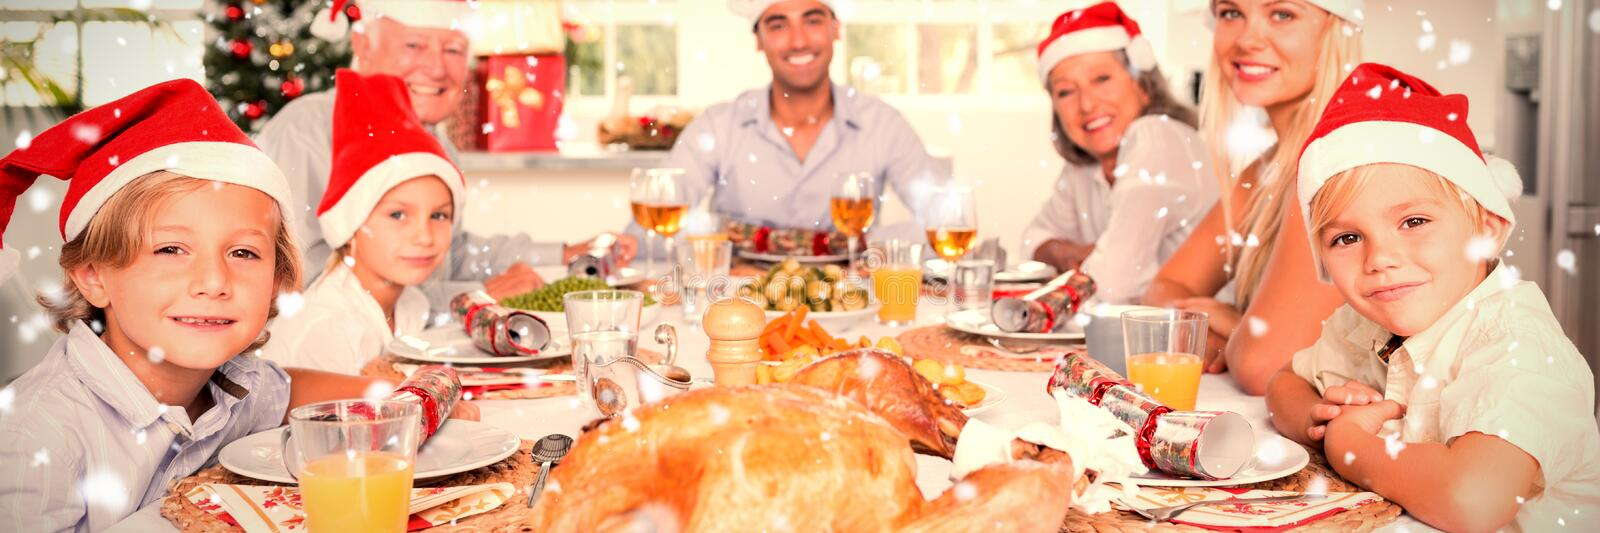 Composite image of happy family wearing santa hats around the dinner table royalty free stock photos